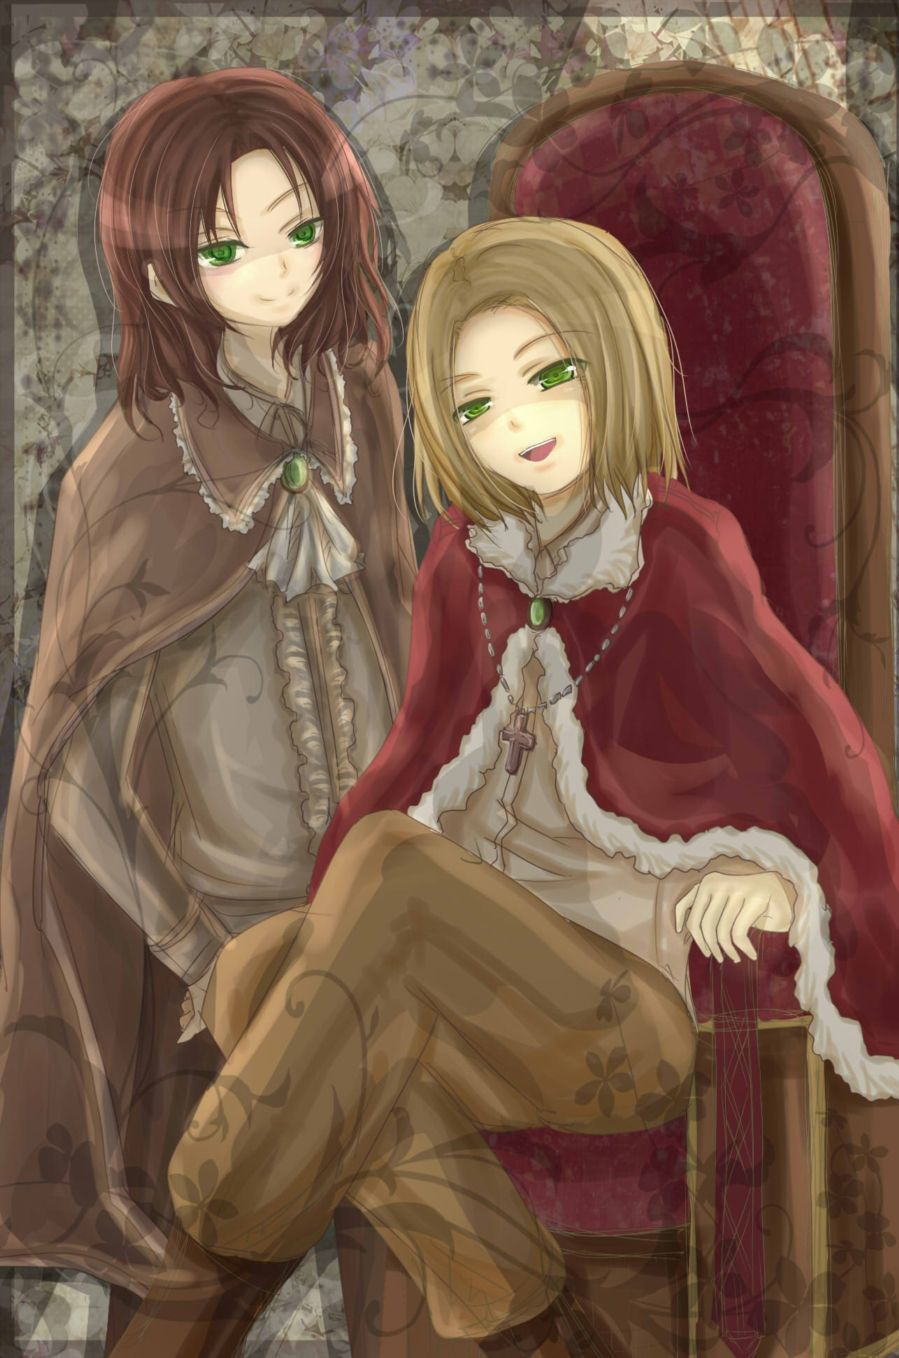 """Ya got any idea what we should, like, do with the poor idiot, Liet?"" ......... ""Whatever you want, love."""